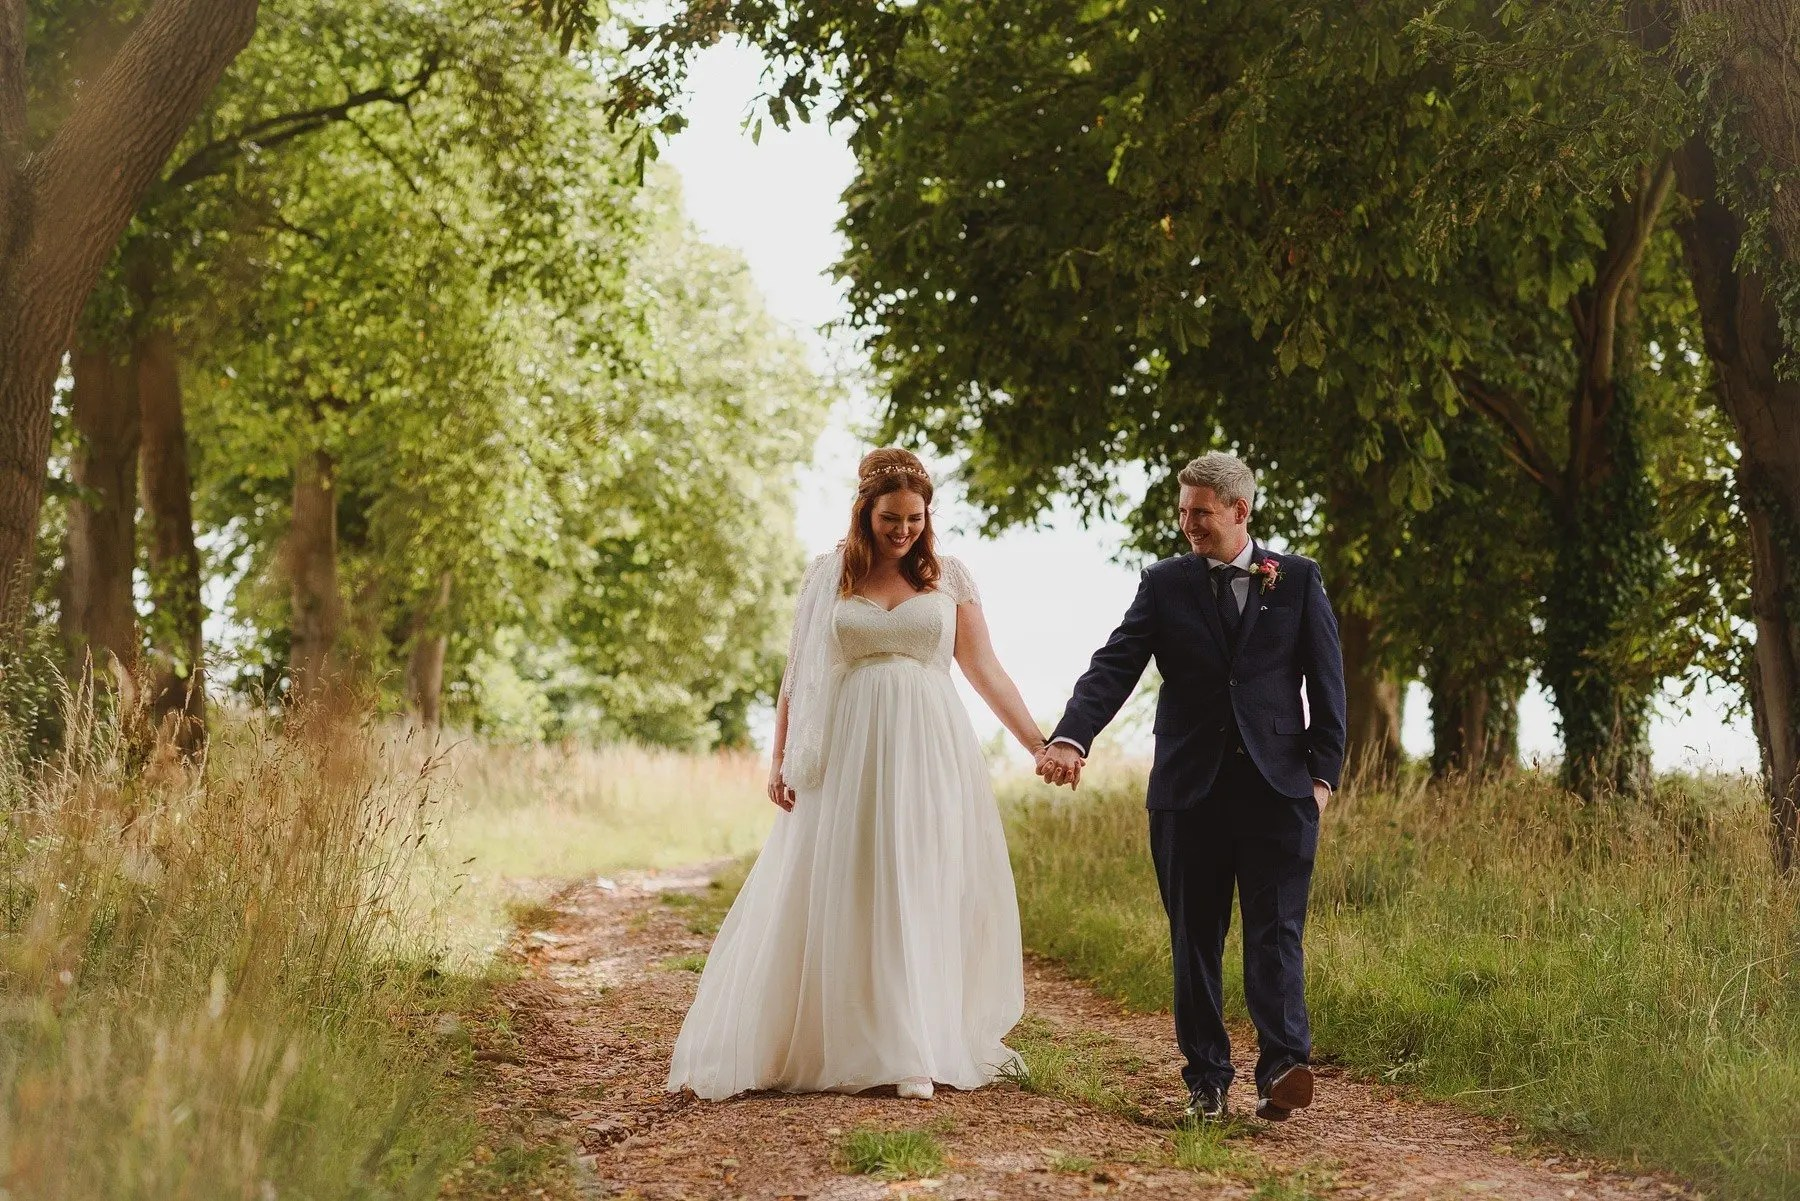 natural bride and groom portrait at outdoor wedding